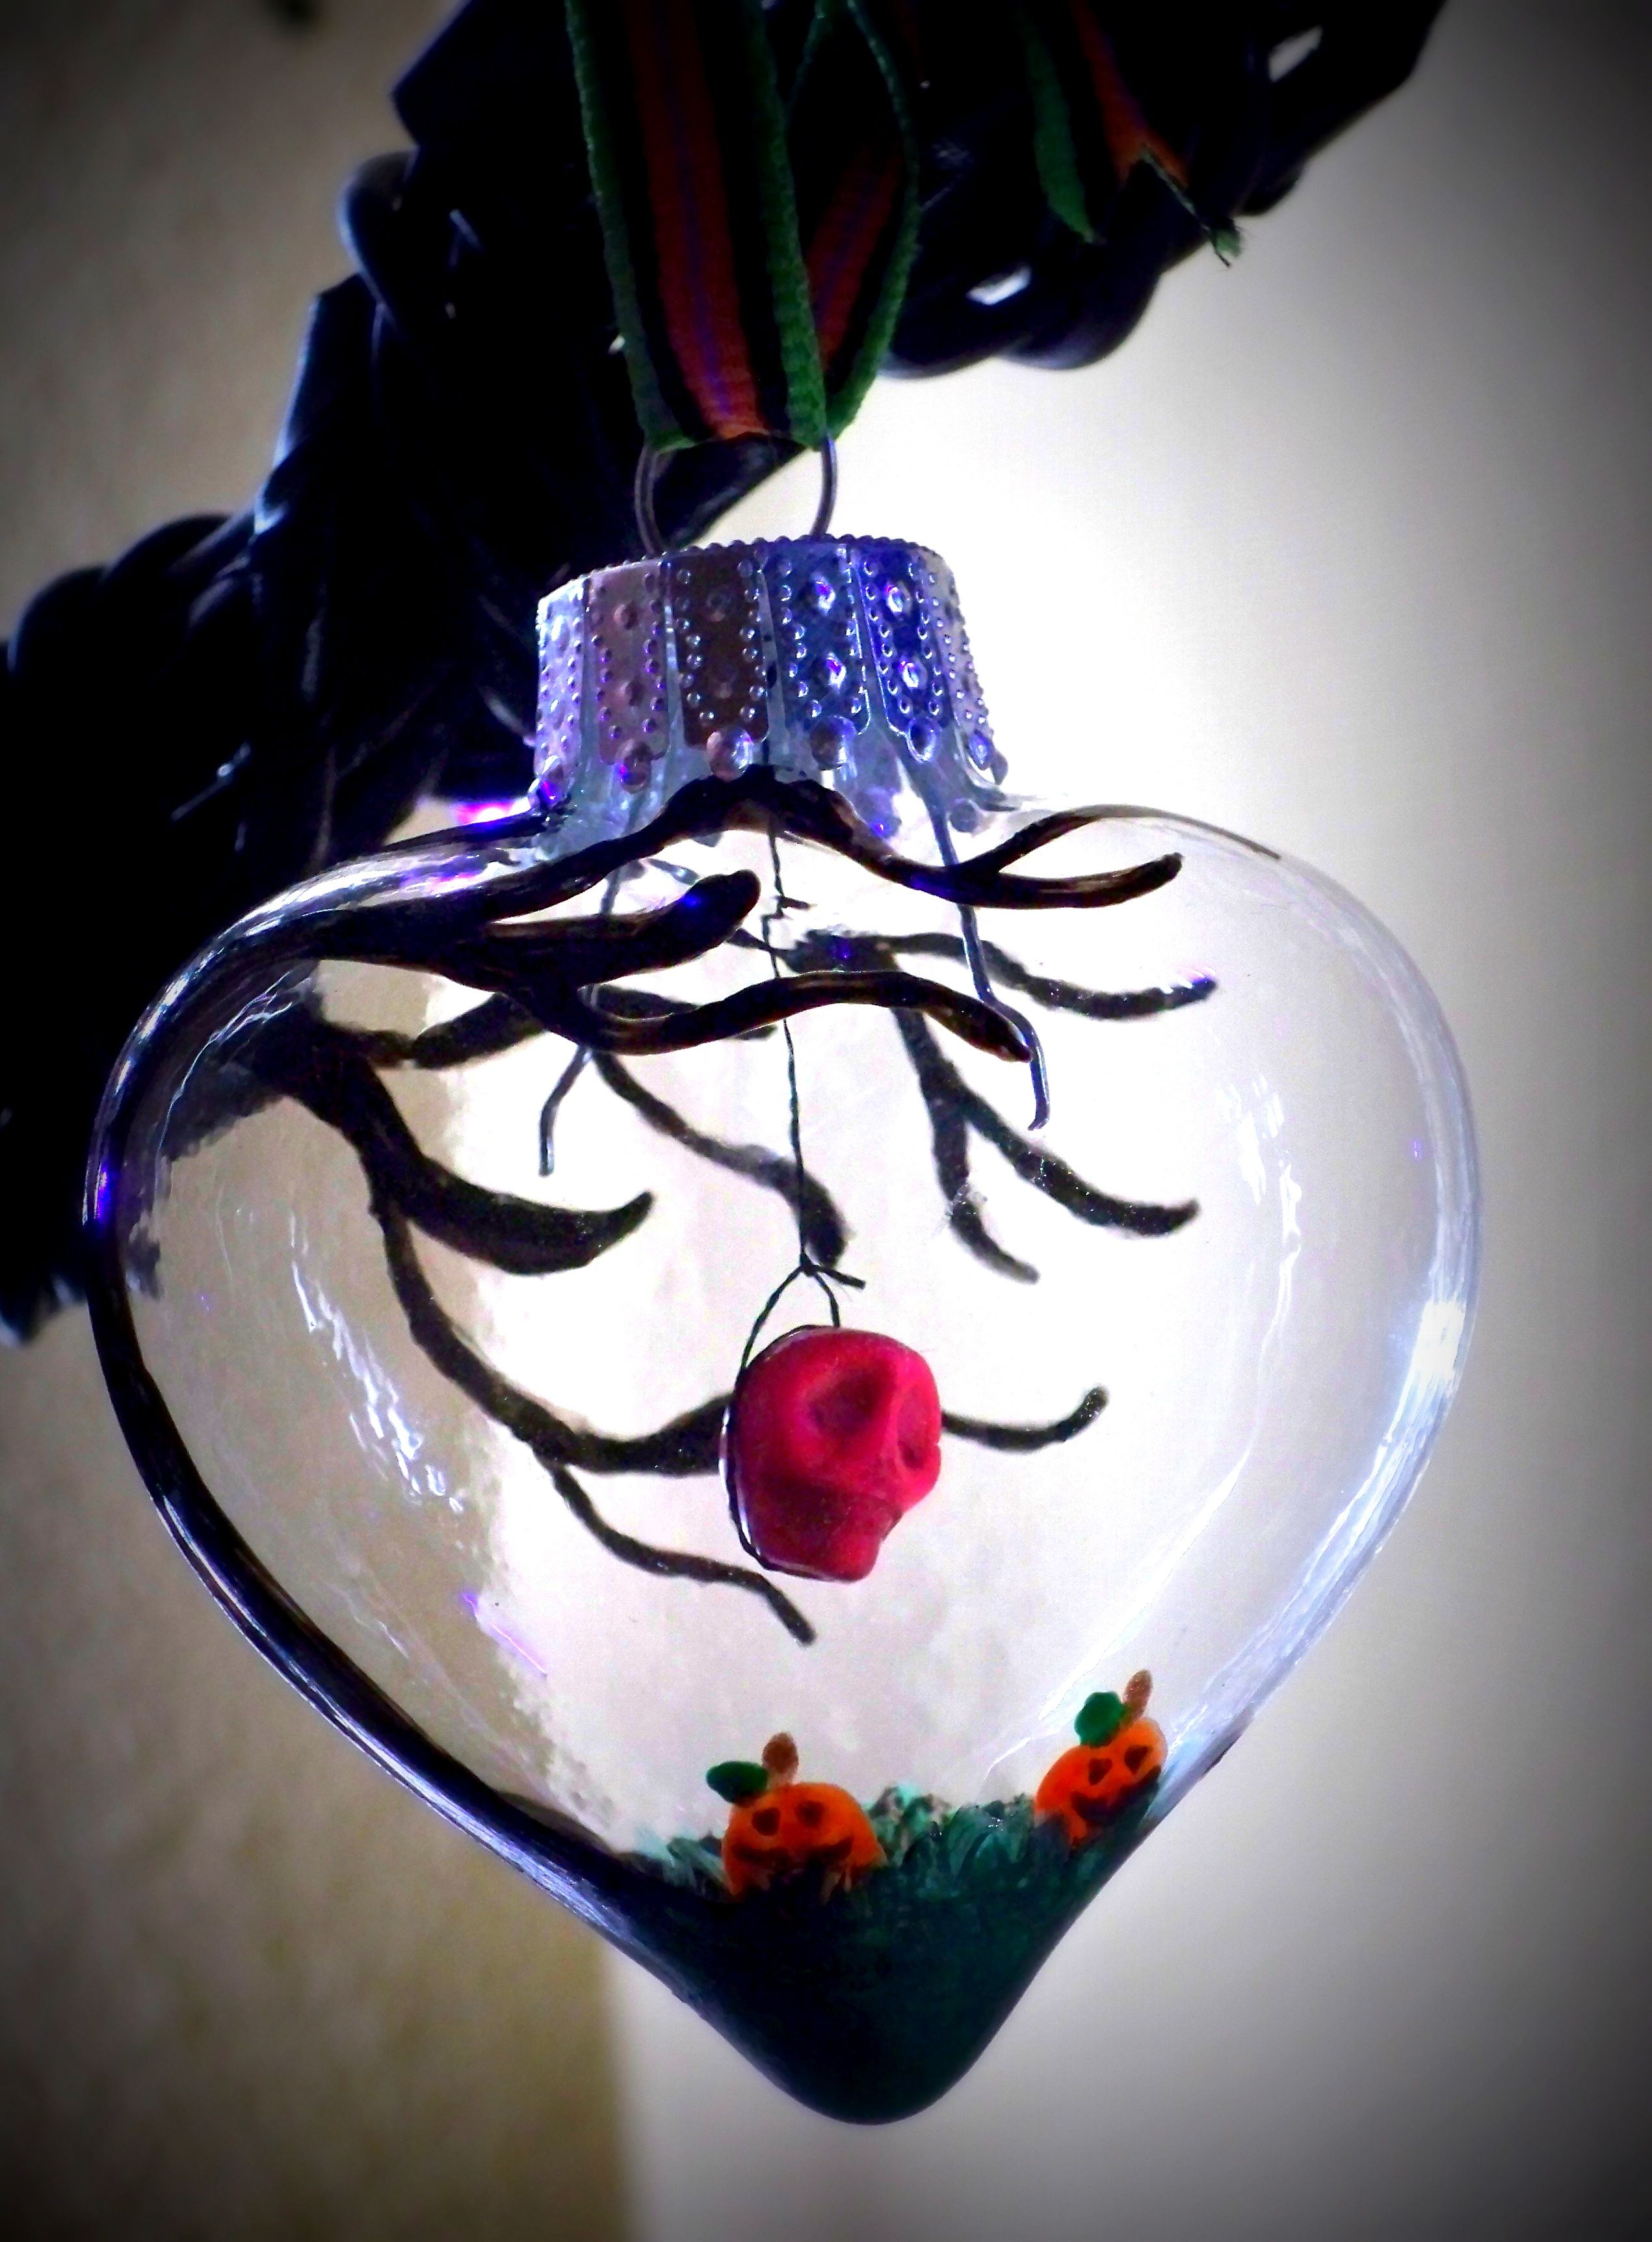 Her n his skull ornament hand painted ornaments